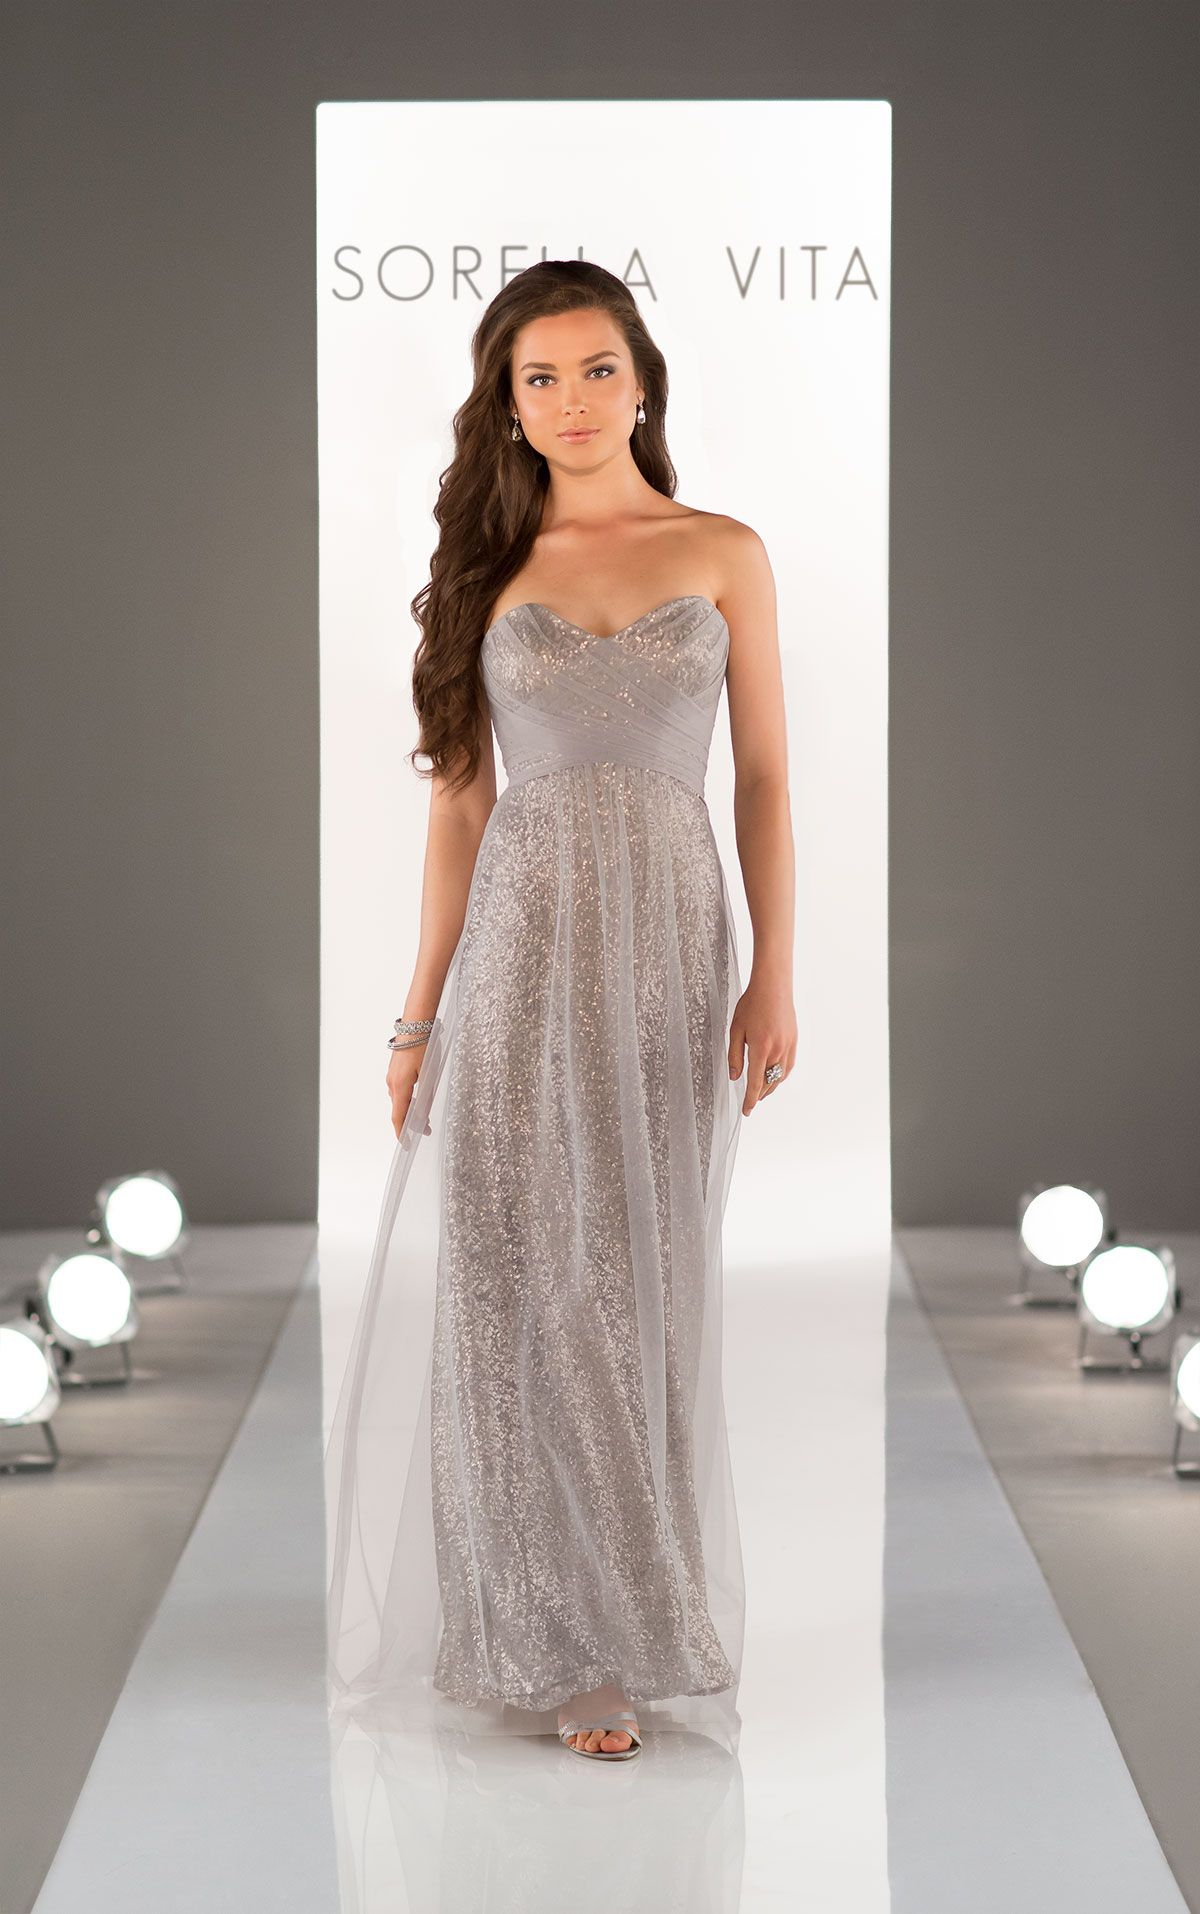 The beautiful 2017 bridesmaid collection from sorella vita style 8684 sorella vita bridesmaid dress ombrellifo Choice Image